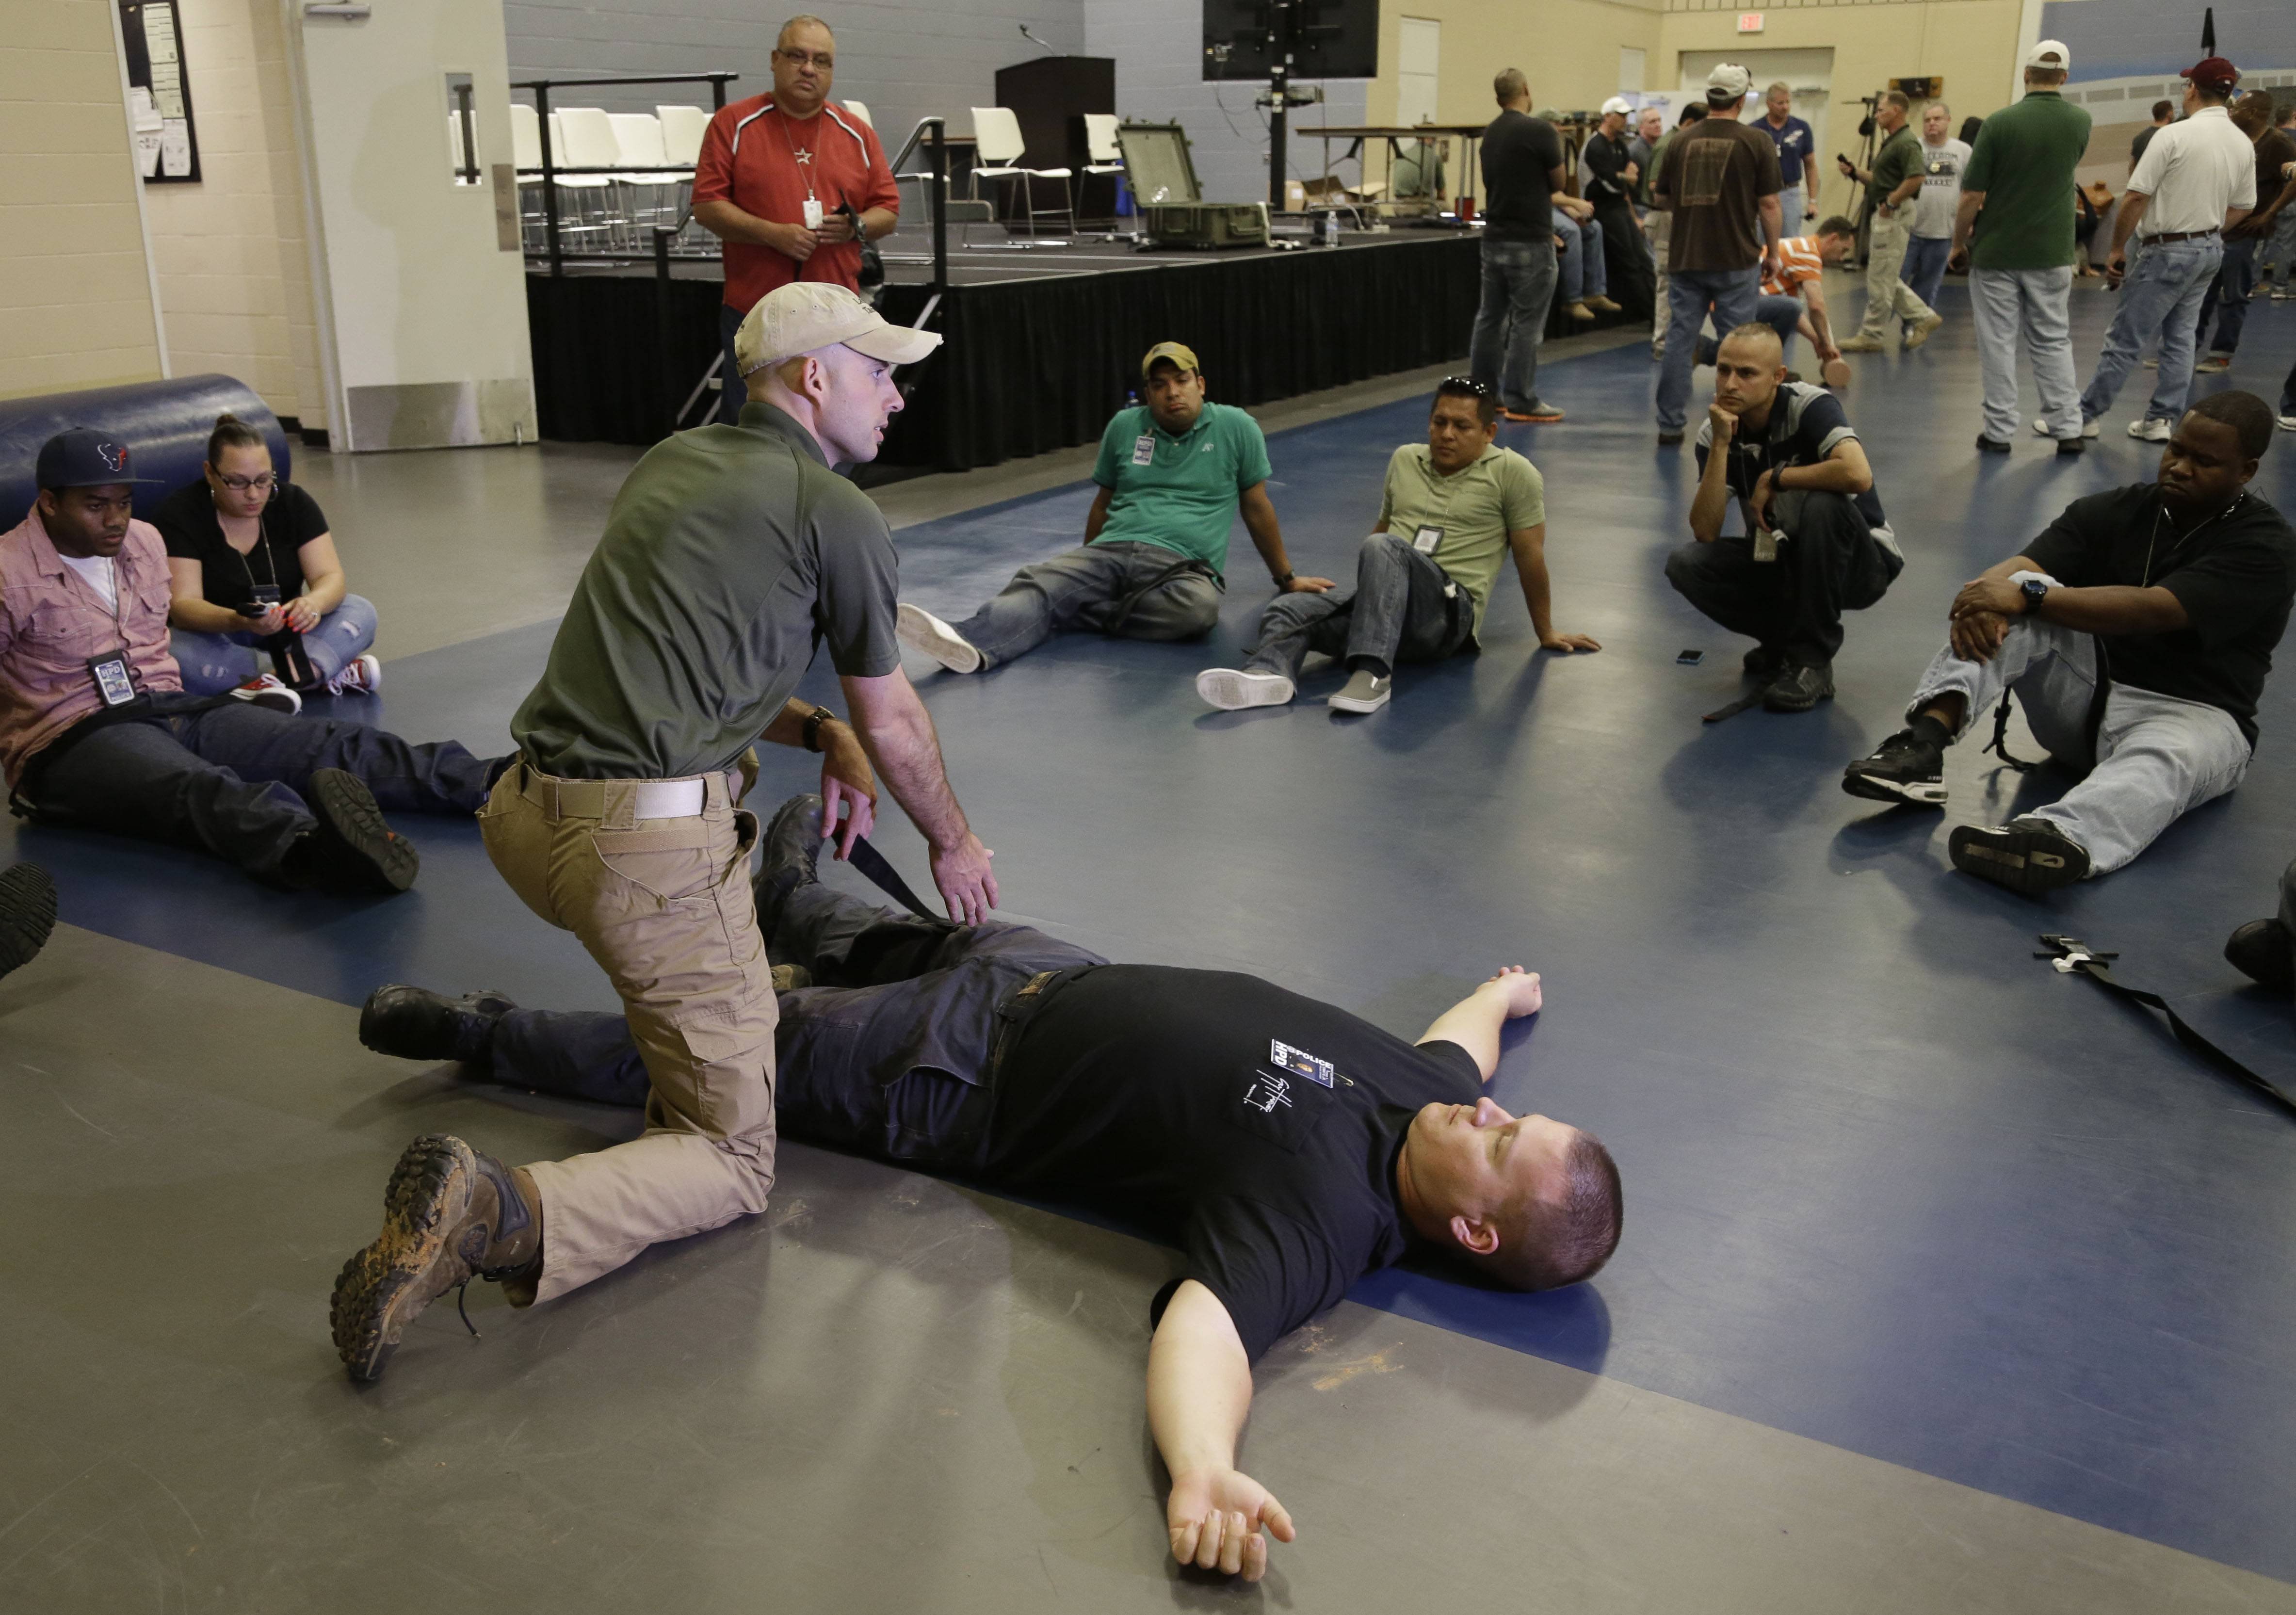 Houston police officer Austin Huckabee, left, uses officer Thomas Emmite, Jr, to show other officers how to apply a tourniquet at the police academy in Houston. Cities across the country are training and equipping police officers to use tourniquets and combat gauze.